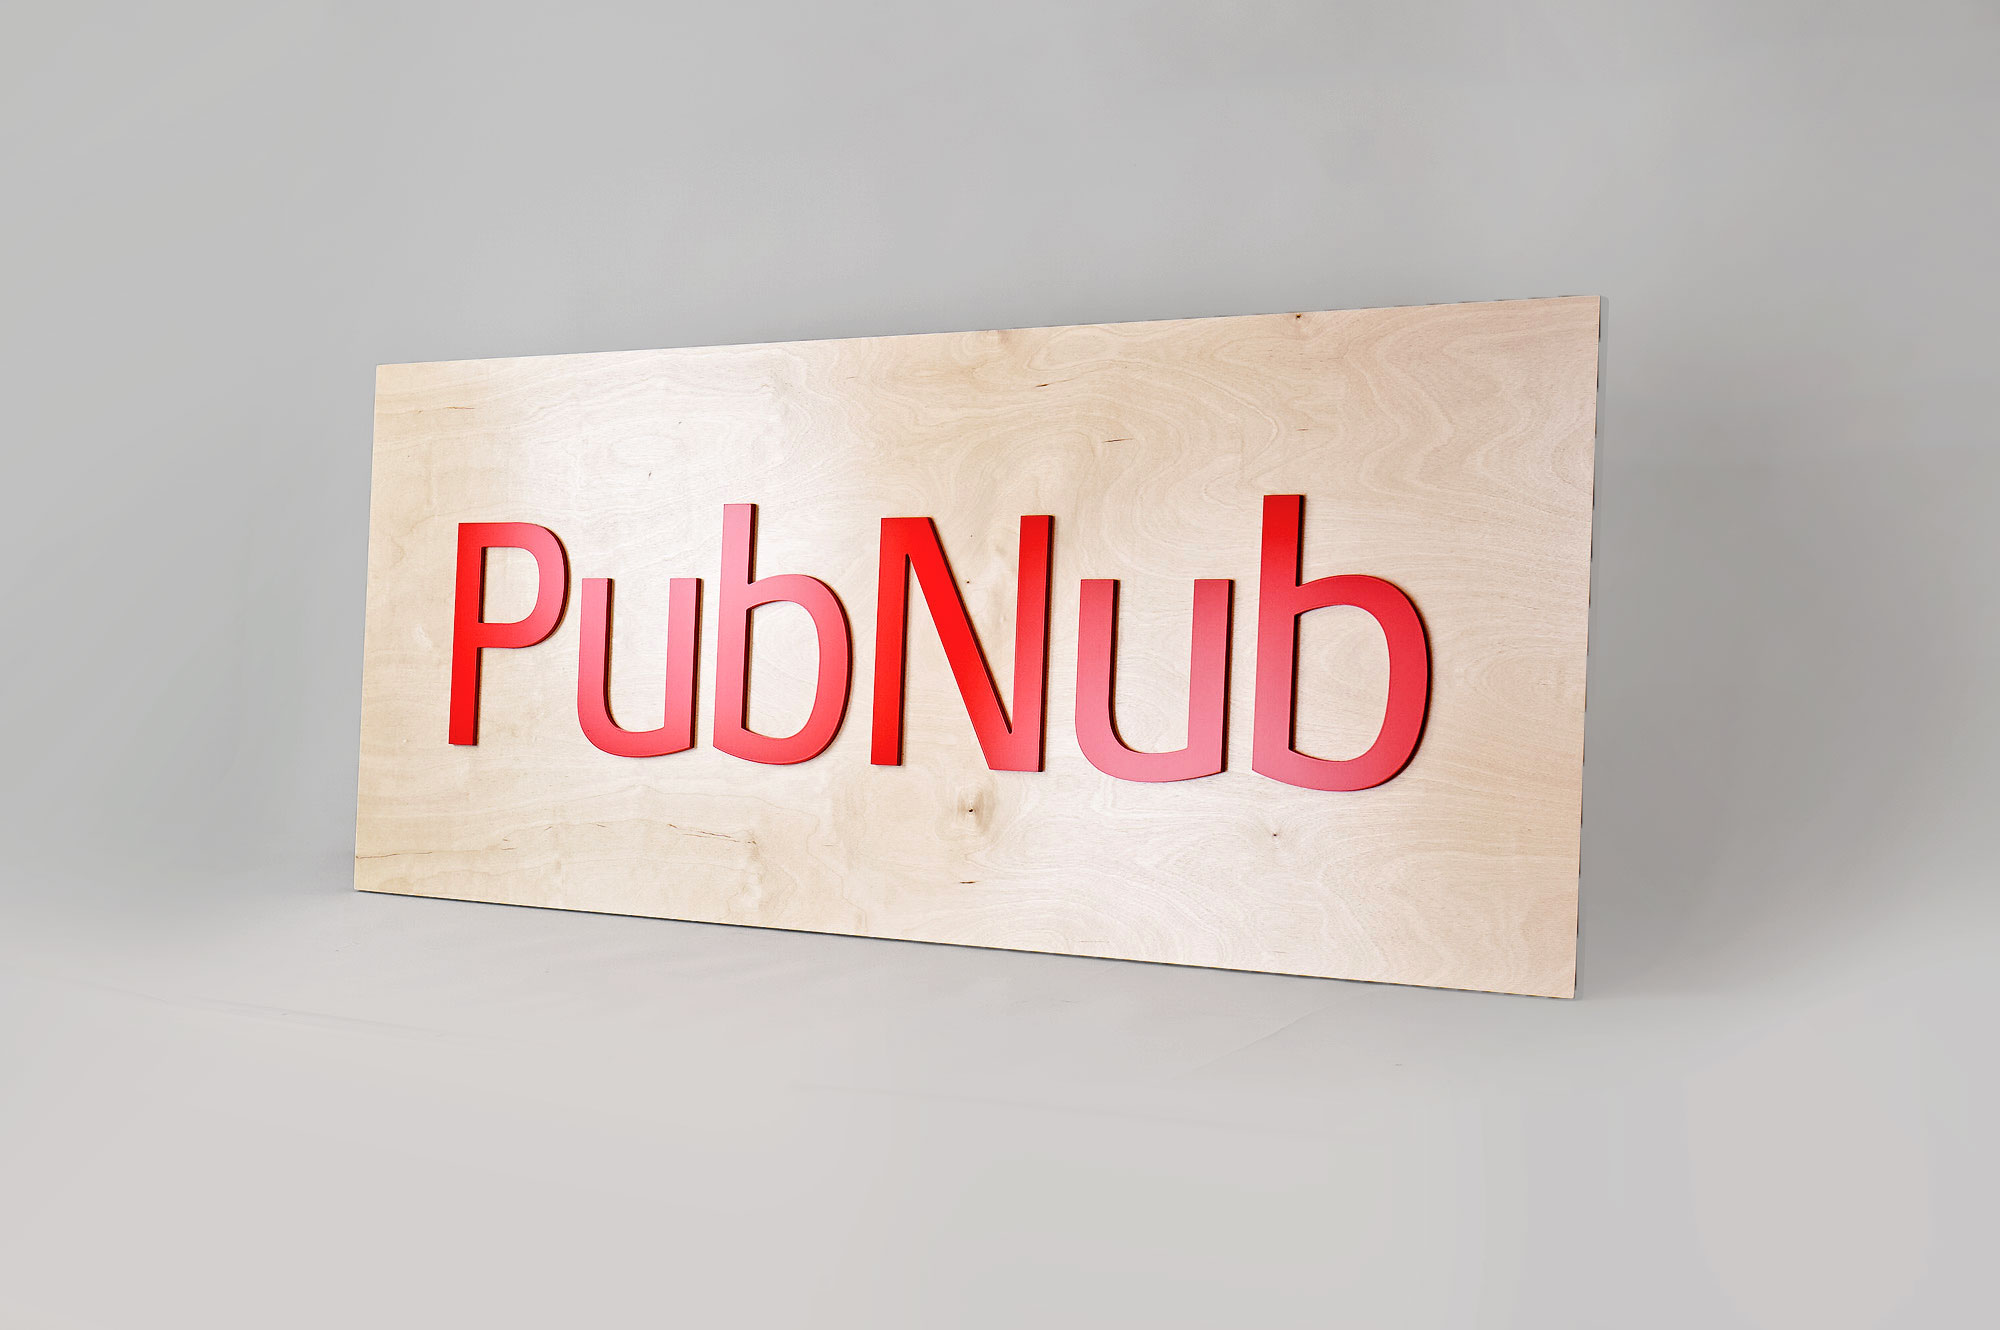 Light wood sign with red letters for PubNub, a global Data Stream Network and realtime infrastructure-as-a-service company based in San Francisco, California.